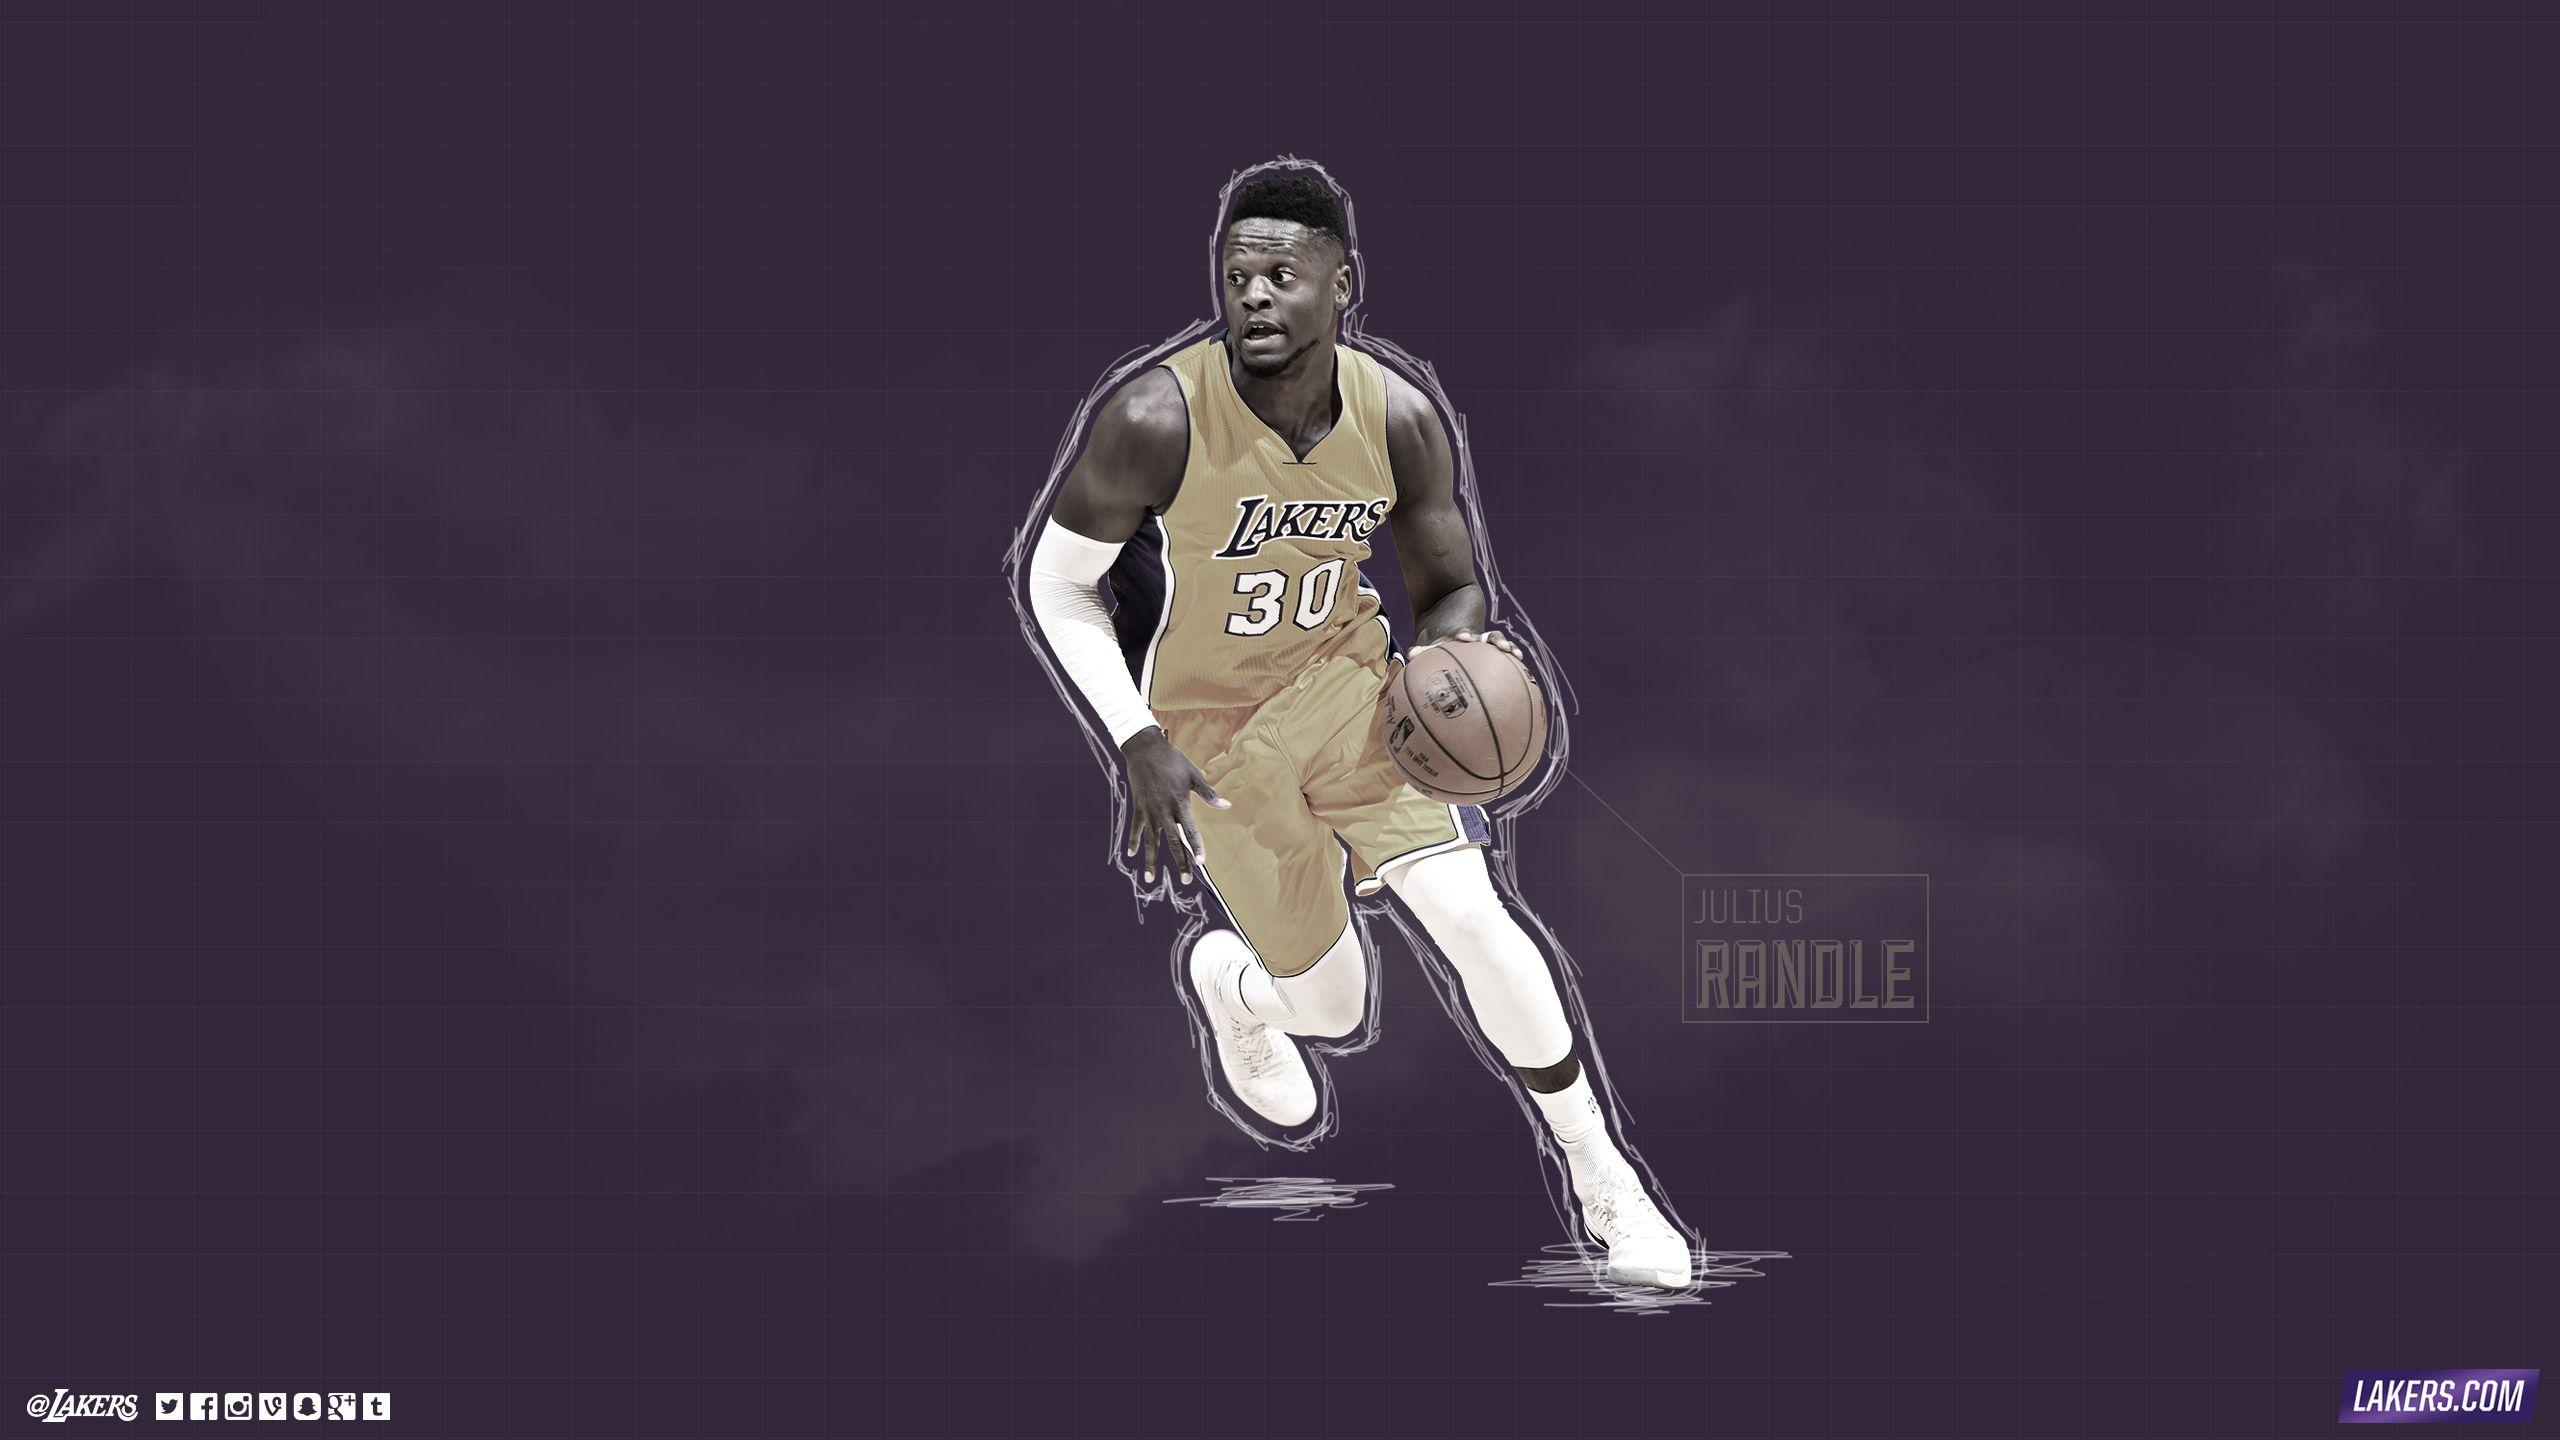 Lakers Wallpapers And Infographics: Basketball Player Wallpapers